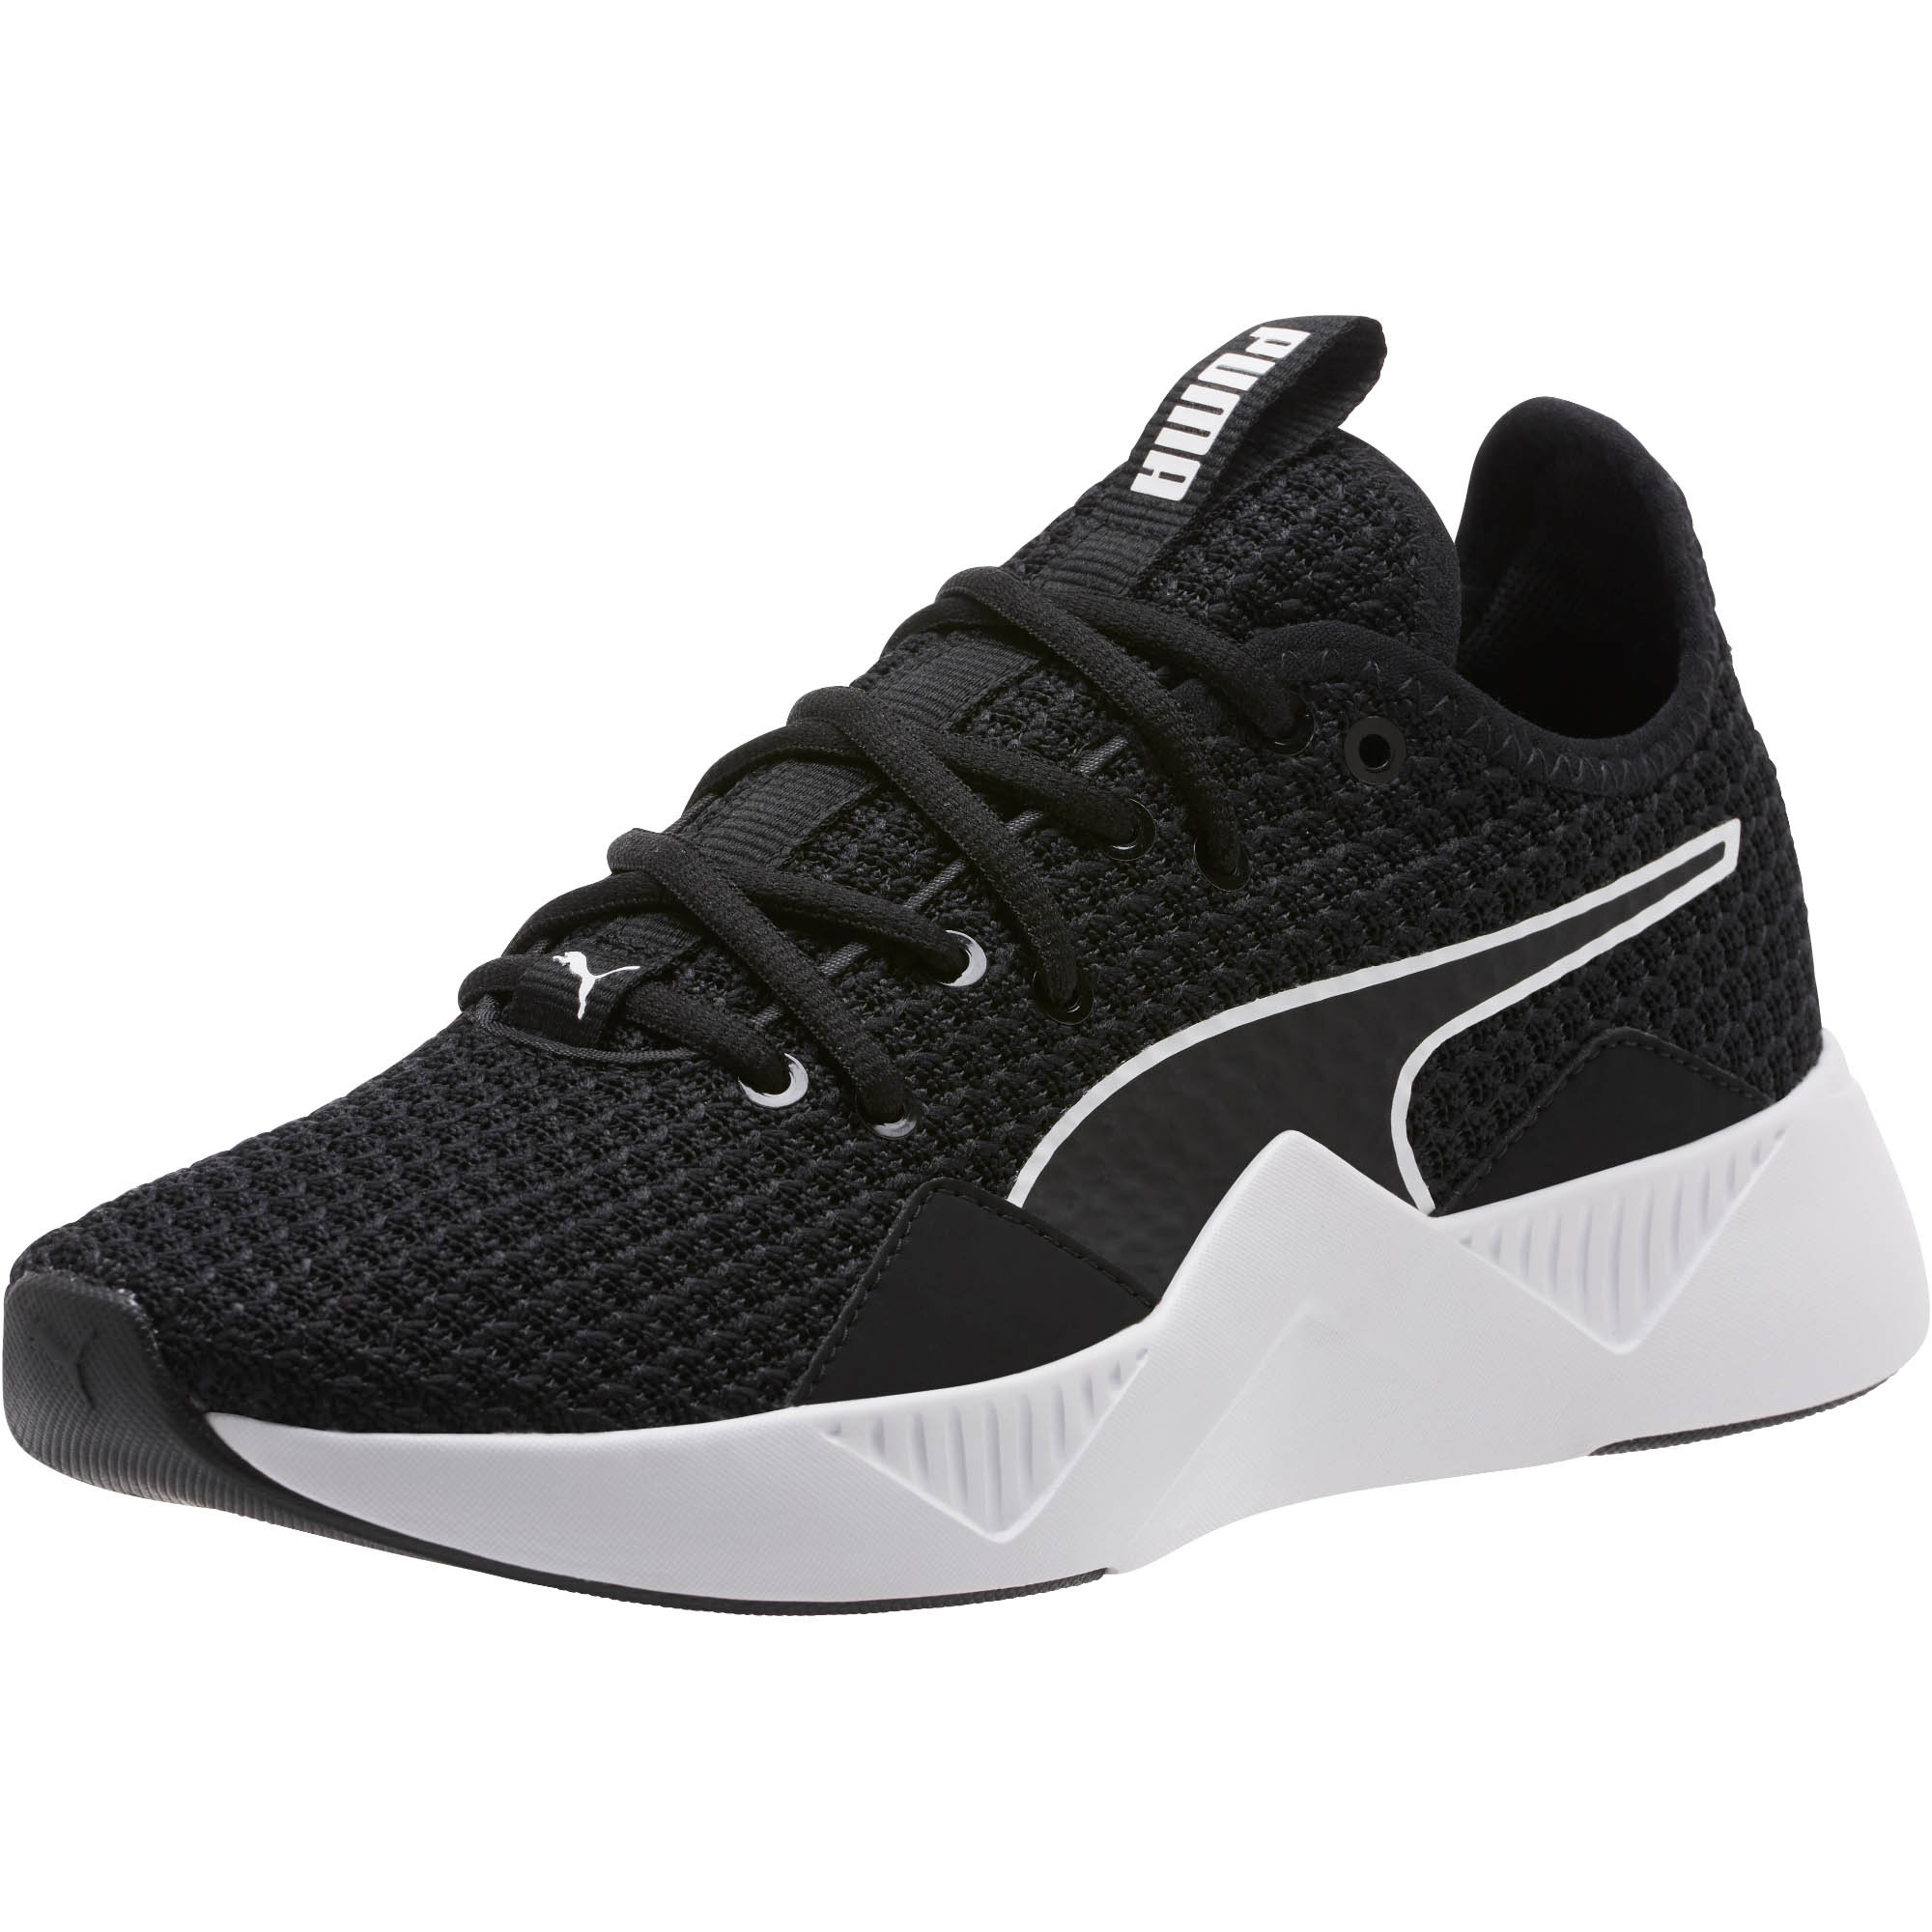 Running + Training | Womens Puma Incite FS Women's Training Shoes White